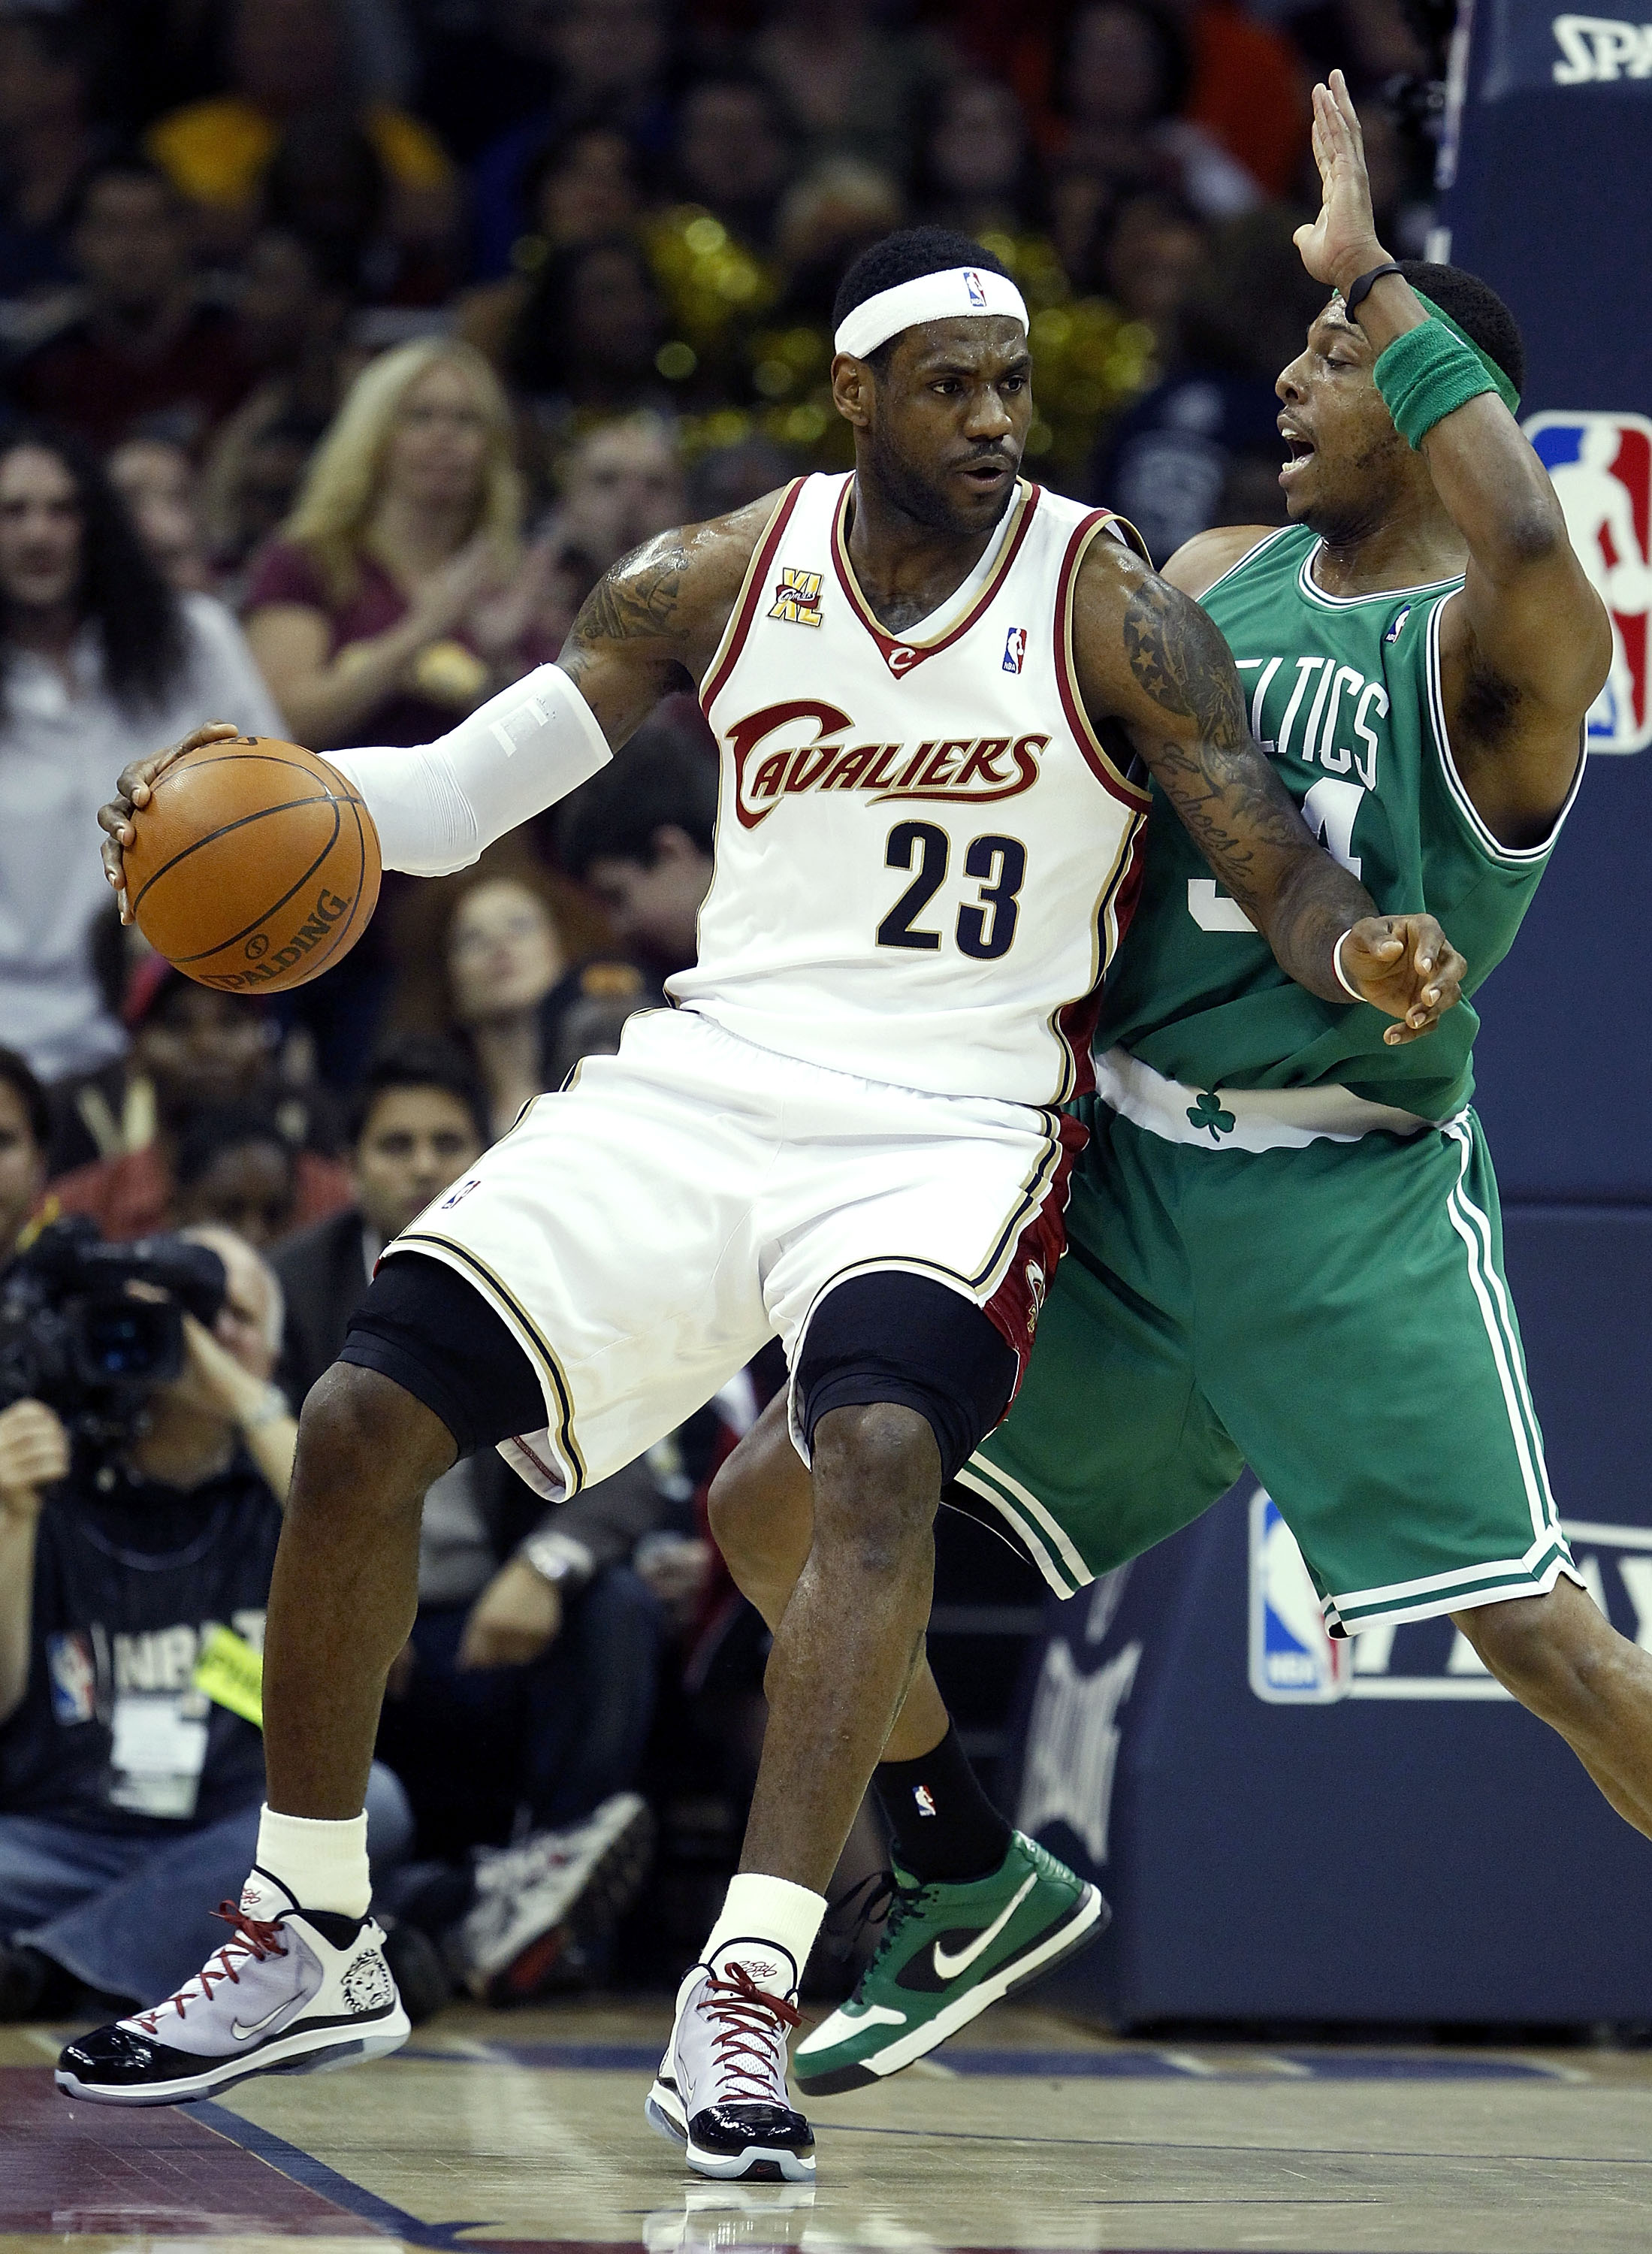 CLEVELAND - MAY 01:  LeBron James #23 of the Cleveland Cavaliers tries to get around Paul Pierce #34 of the Boston Celtics in Game One of the Eastern Conference Semifinals during the 2010 NBA Playoffs at Quicken Loans Arena on May 1, 2010 in Cleveland, Oh